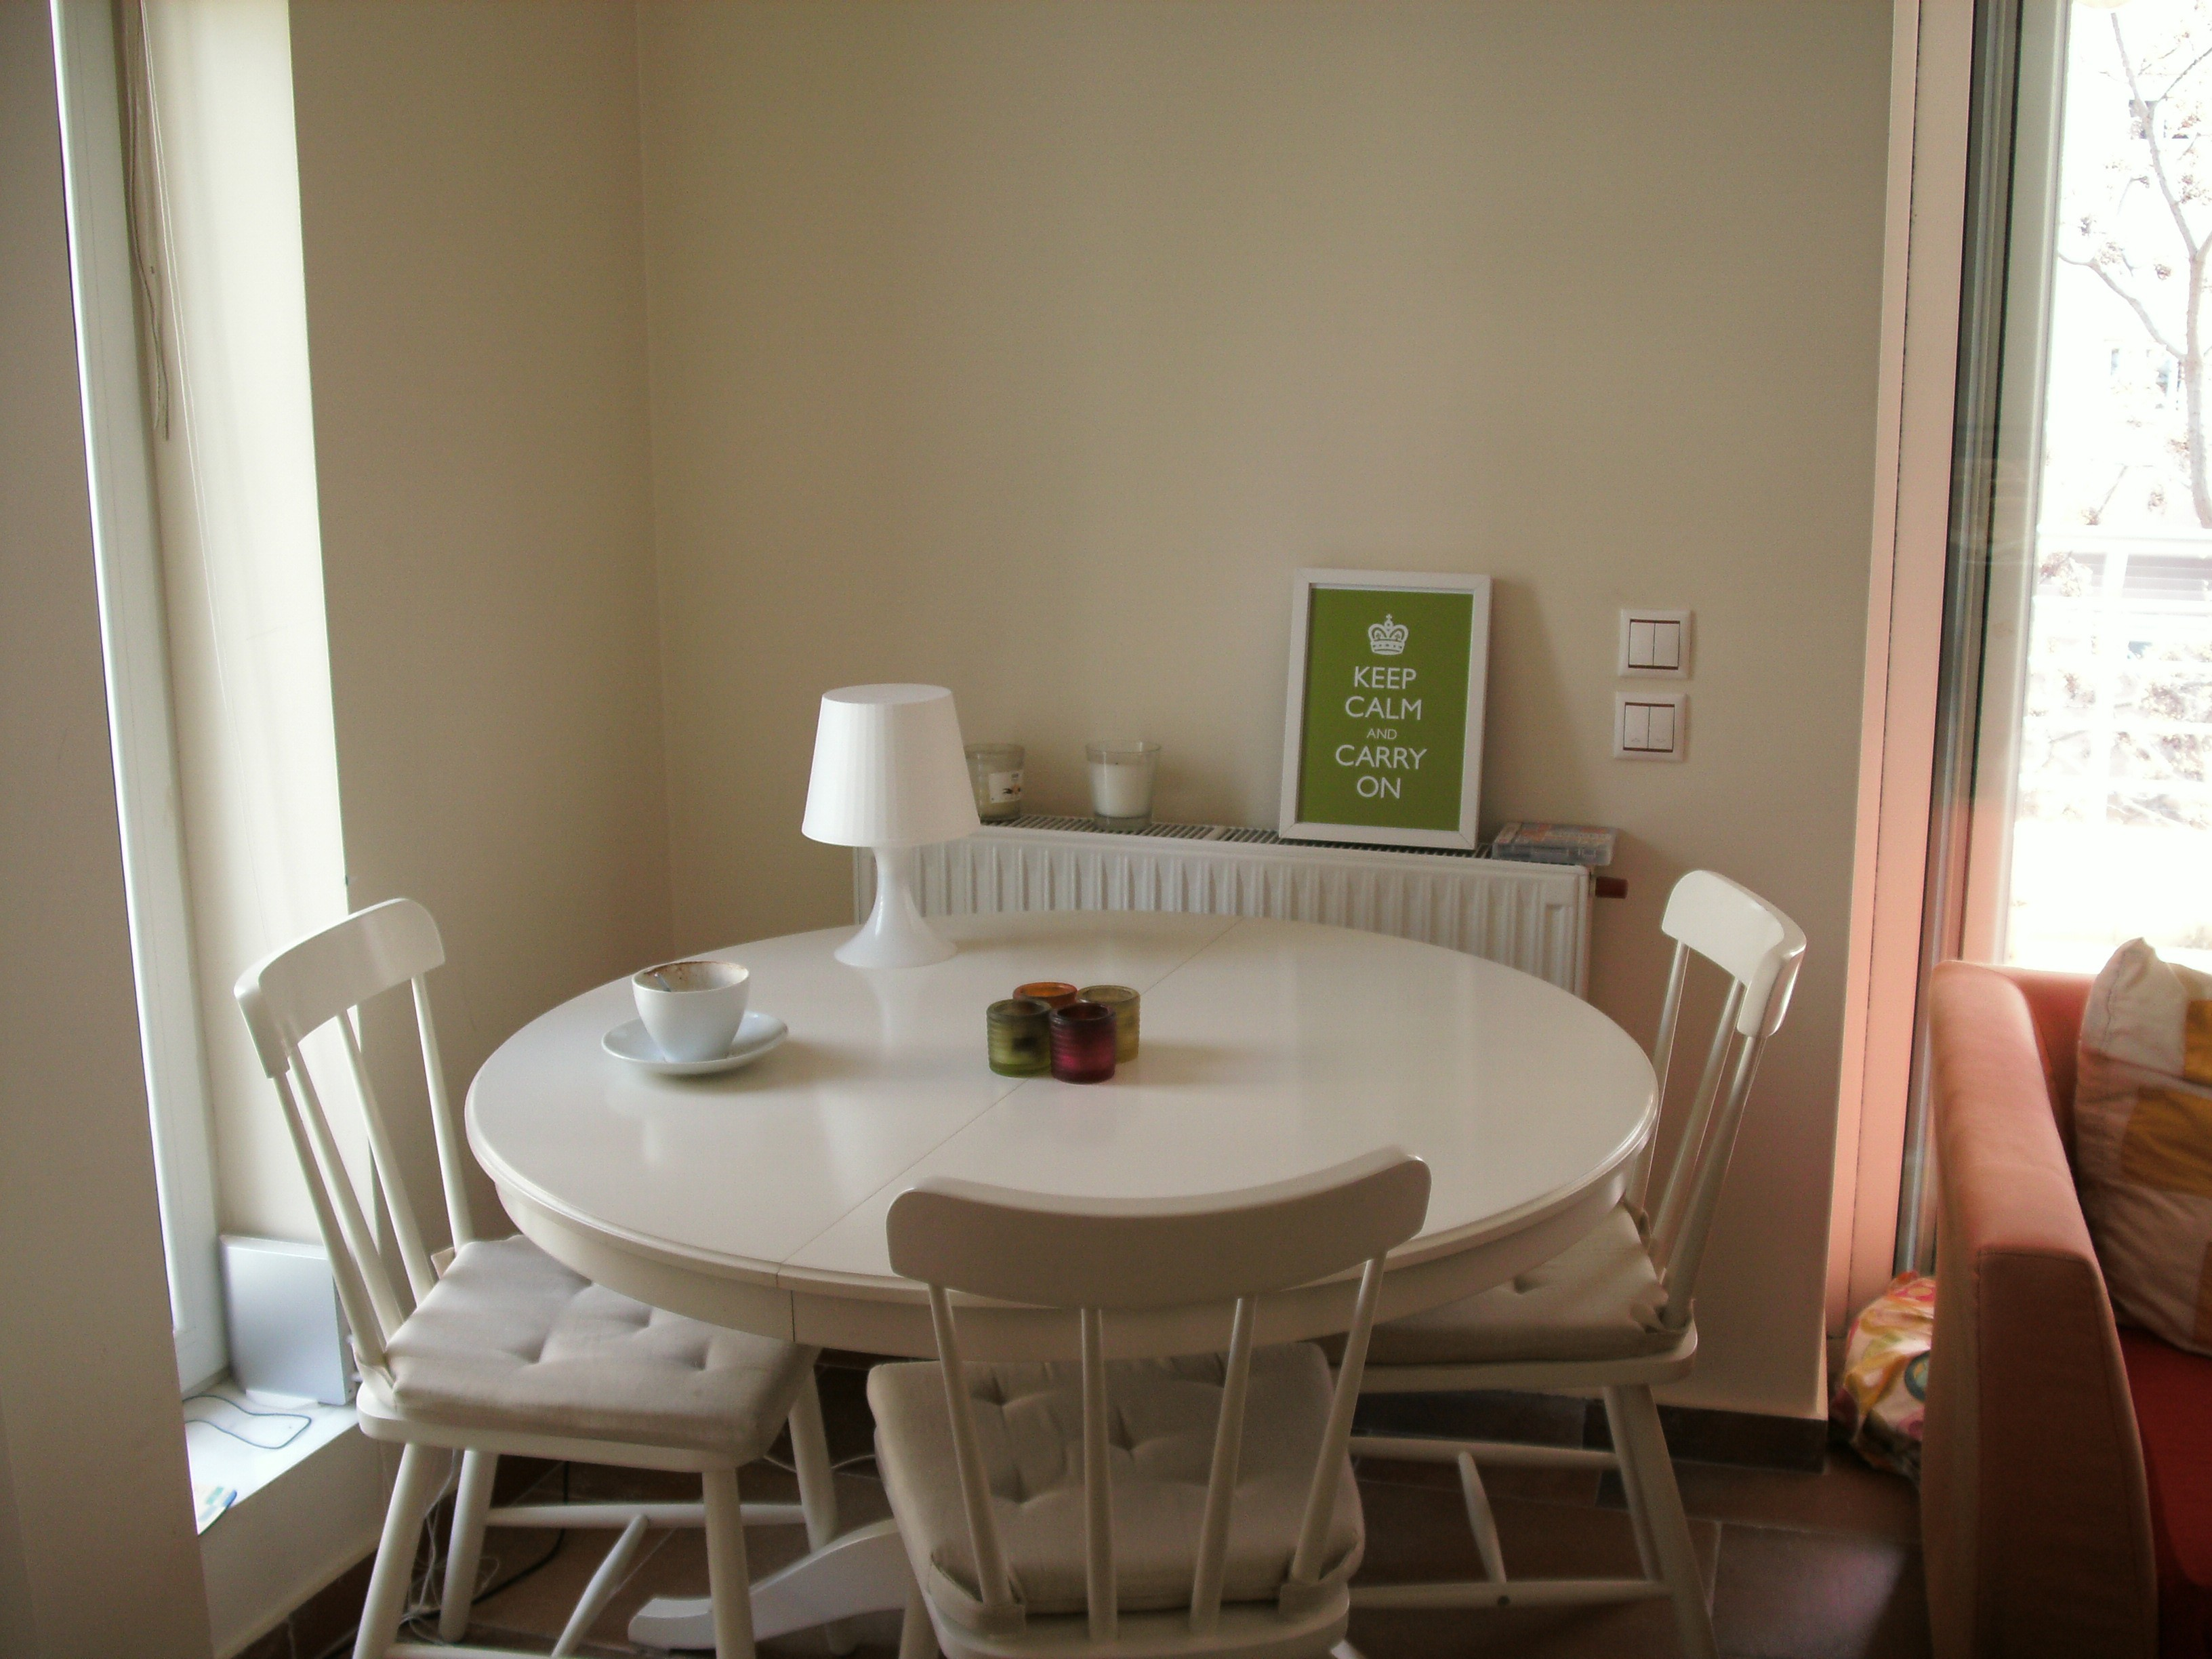 White Round Kitchen Table and Chairs Design